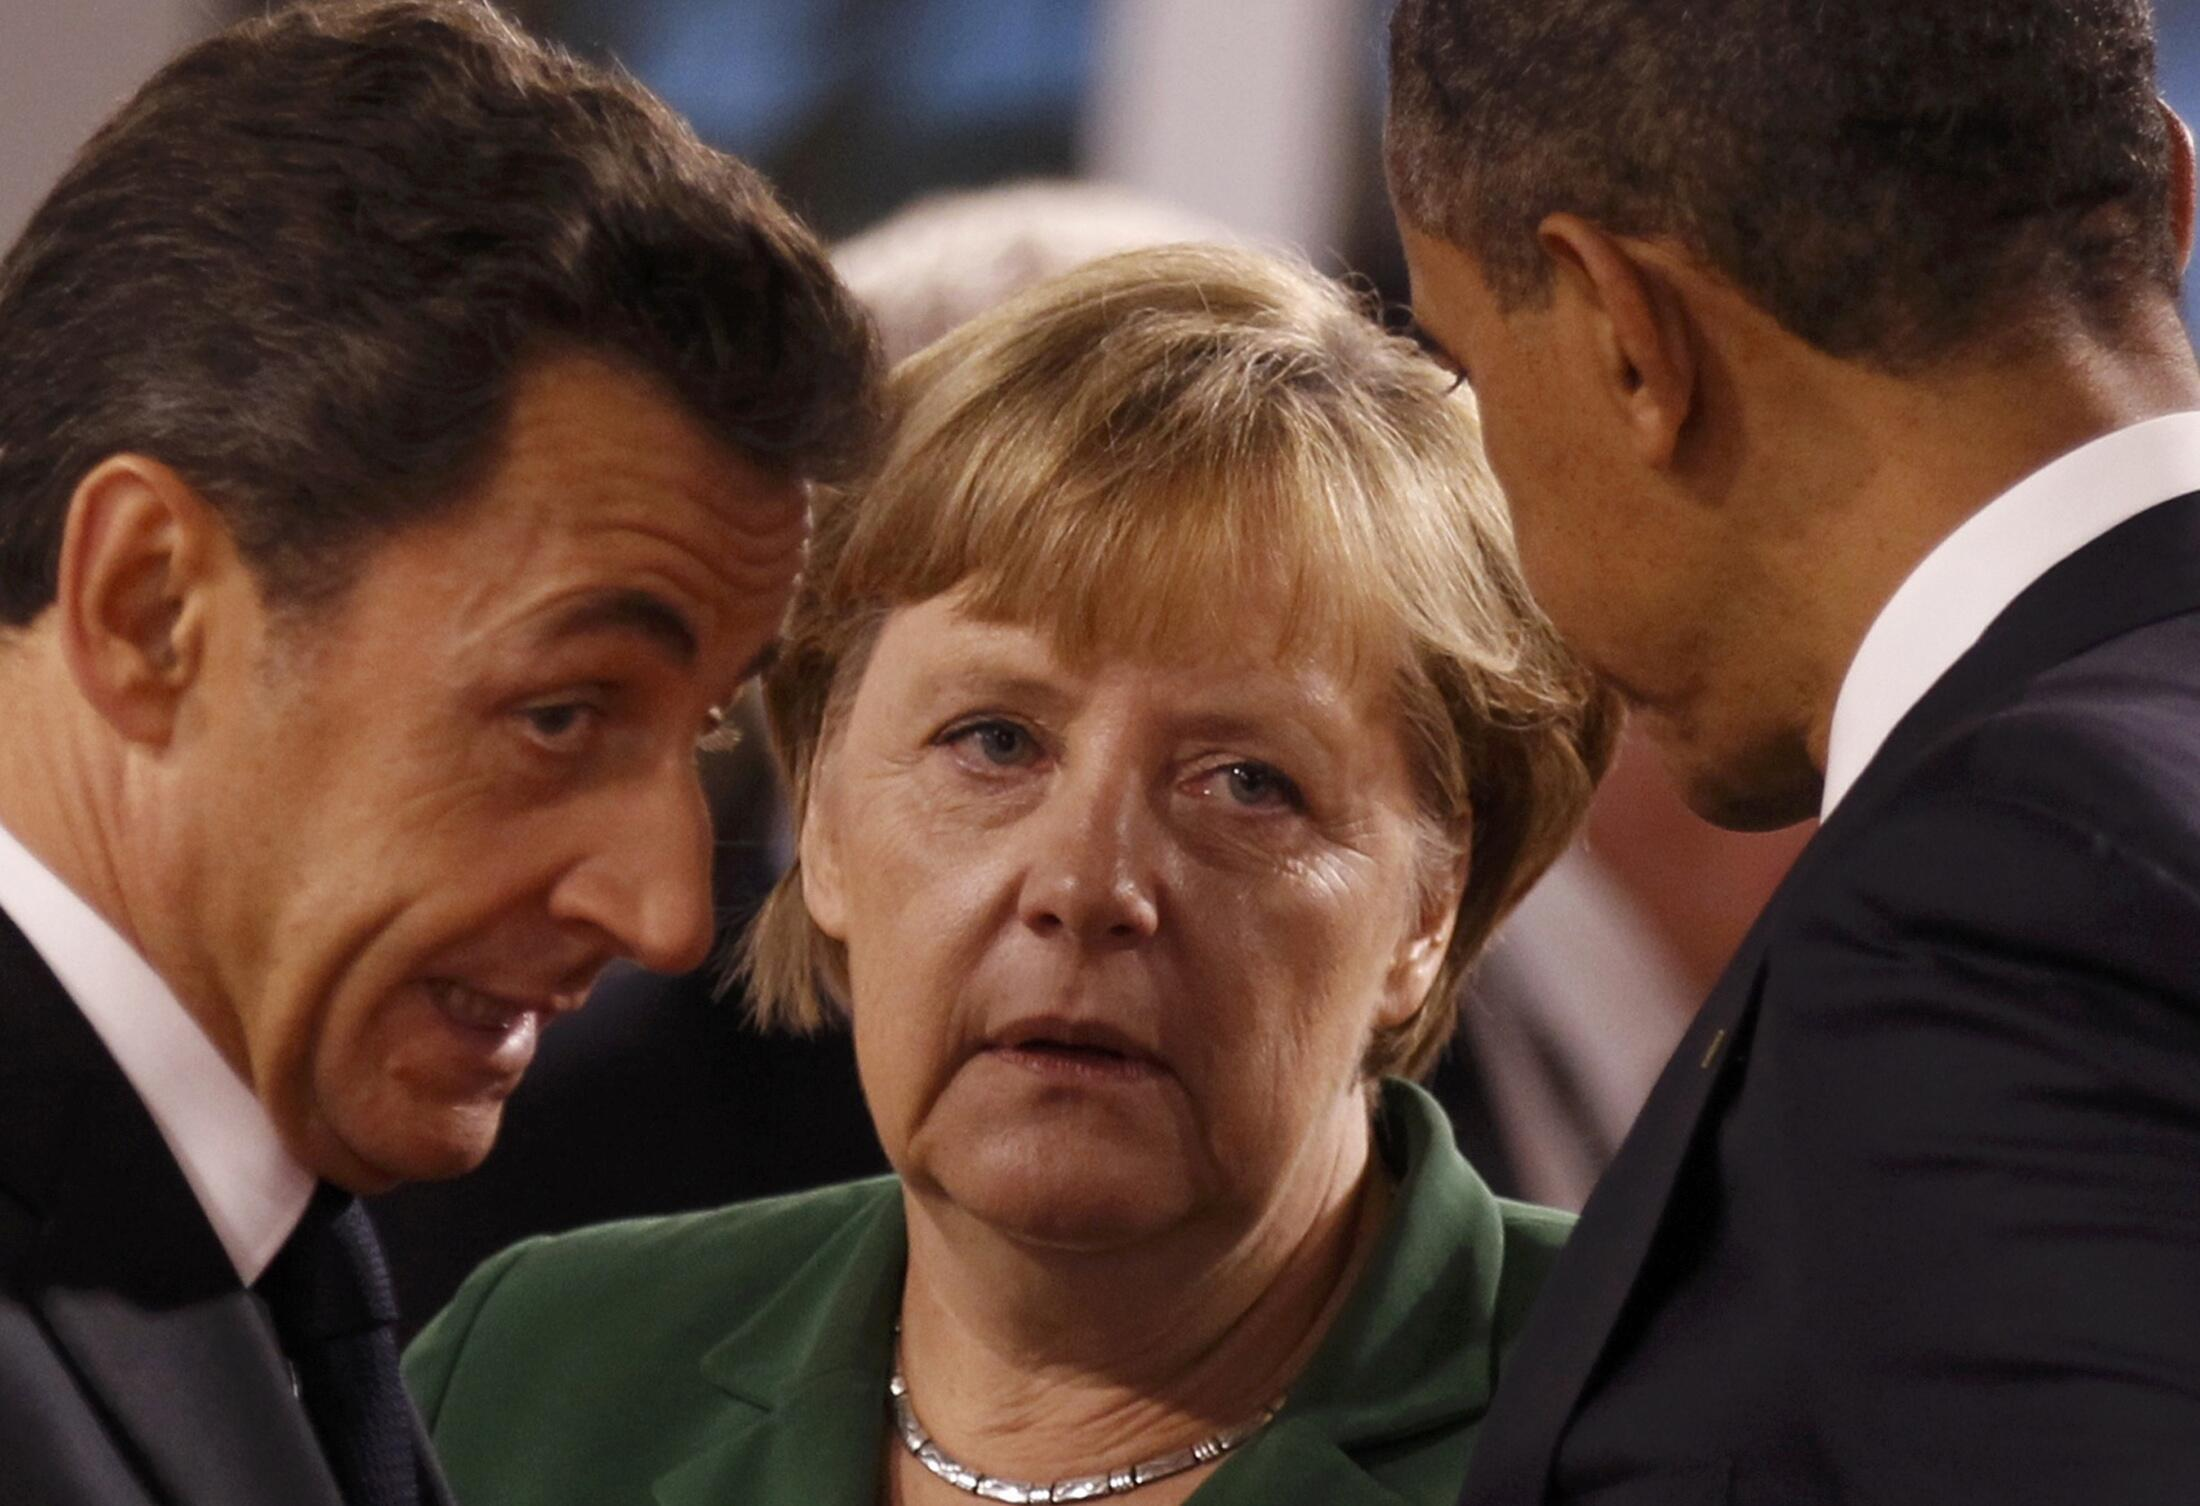 Bossyboots? Nicolas Sarkozy (L), Angela Merkel (C) and  Barack Obama (R) at the G20 in Nice this month